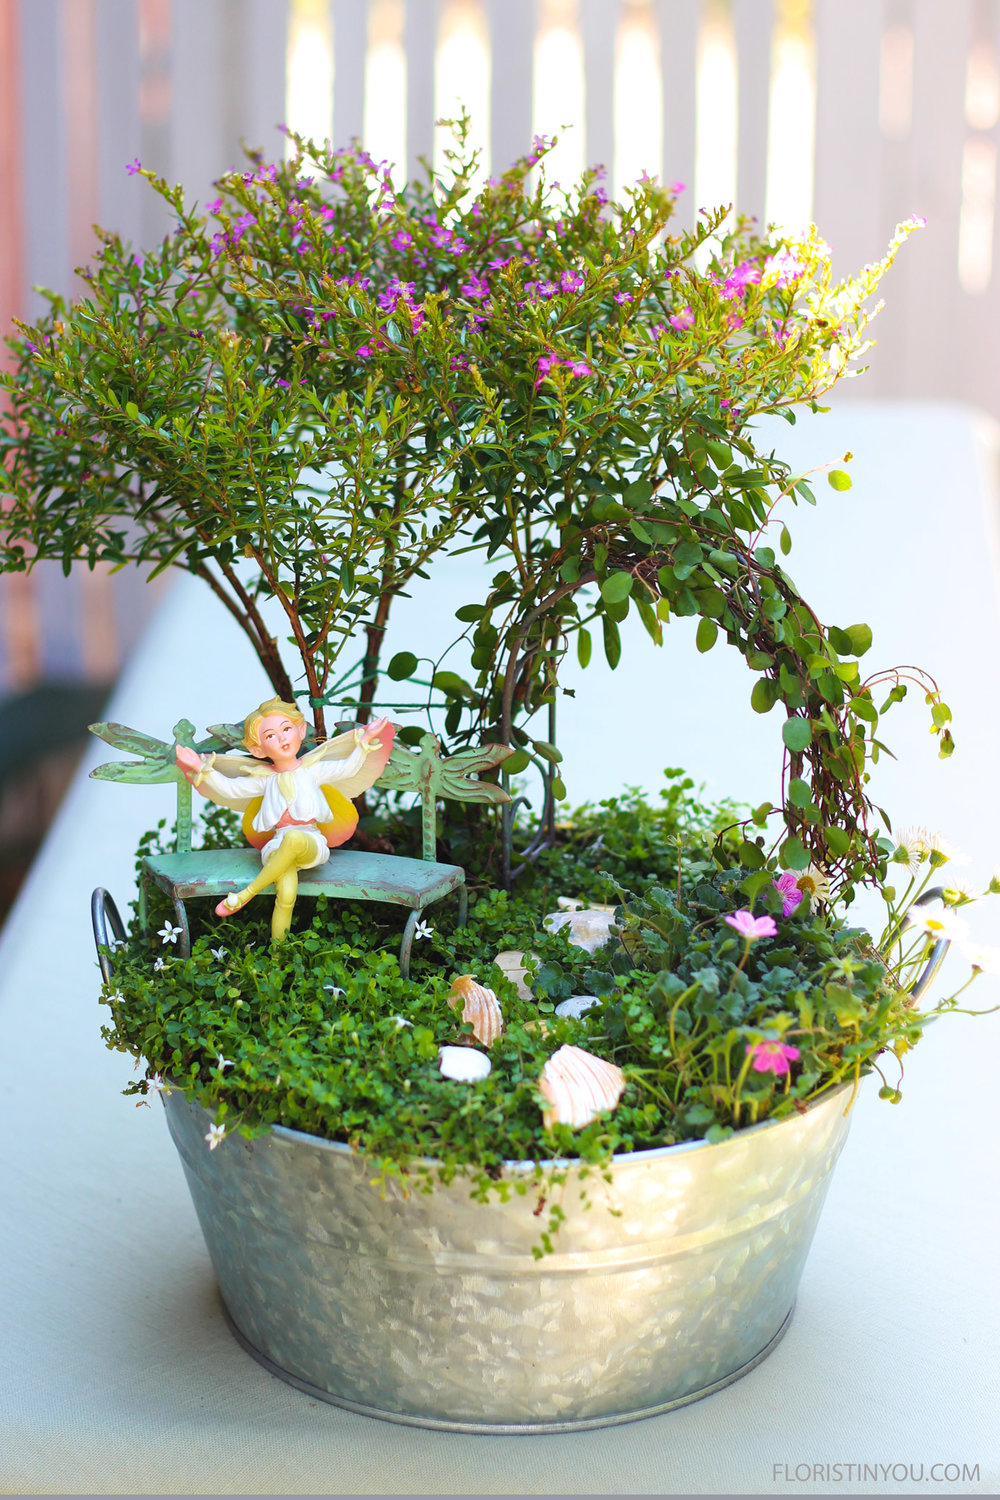 """How to Make a Fairy Garden                     Normal   0           false   false   false     EN-US   JA   X-NONE                                                                                                                                                                                                                                                                                                                                                                              /* Style Definitions */ table.MsoNormalTable {mso-style-name:""""Table Normal""""; mso-tstyle-rowband-size:0; mso-tstyle-colband-size:0; mso-style-noshow:yes; mso-style-priority:99; mso-style-parent:""""""""; mso-padding-alt:0in 5.4pt 0in 5.4pt; mso-para-margin:0in; mso-para-margin-bottom:.0001pt; mso-pagination:widow-orphan; font-size:12.0pt; font-family:Cambria; mso-ascii-font-family:Cambria; mso-ascii-theme-font:minor-latin; mso-hansi-font-family:Cambria; mso-hansi-theme-font:minor-latin;}"""